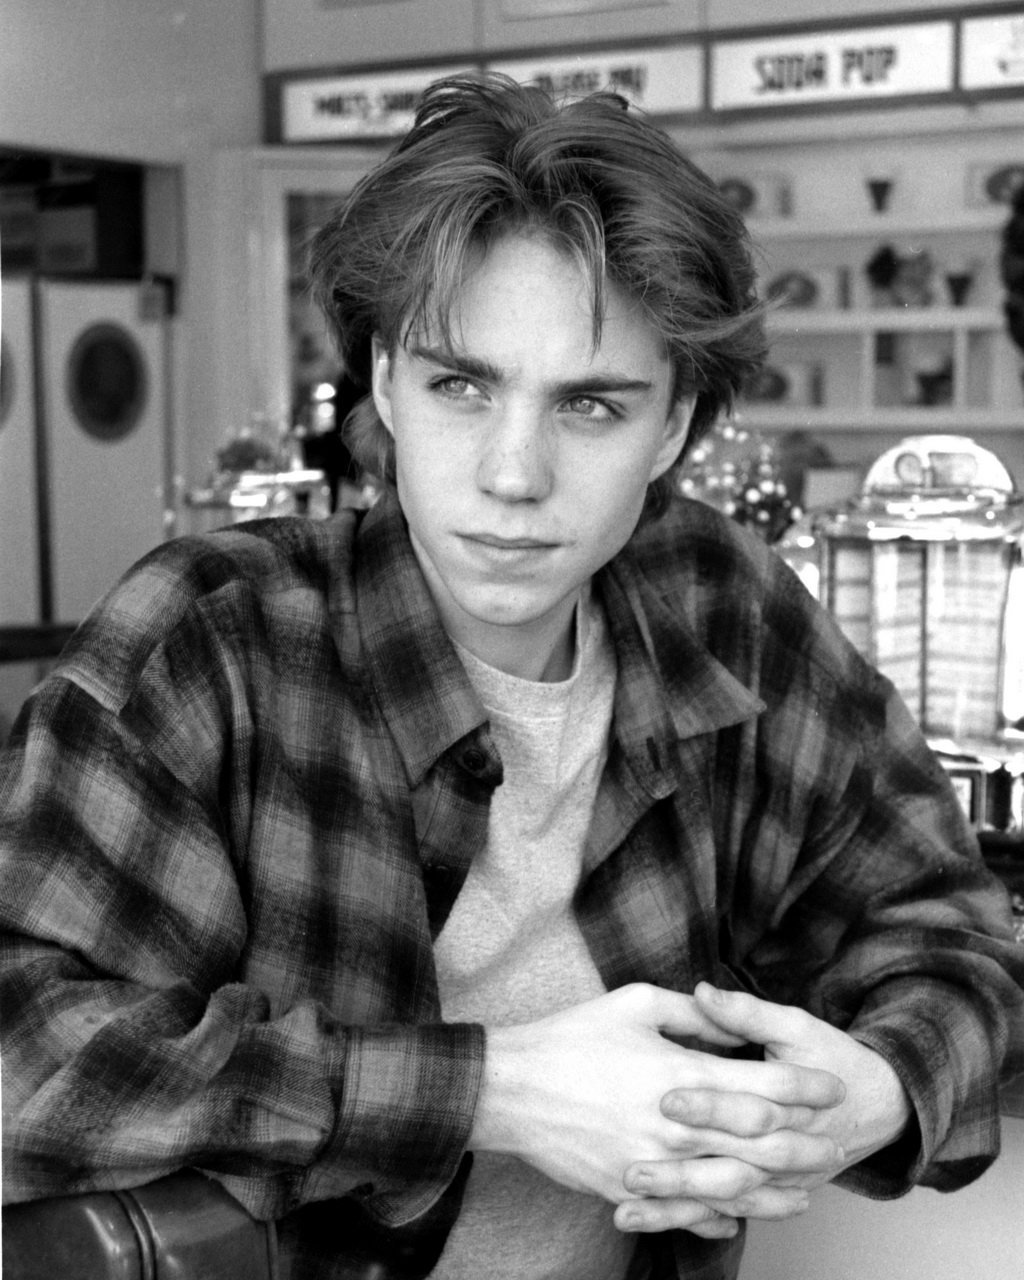 Jonathan Brandis Dec.1993 in a Ventura Blvd diner in Los Angeles | Photo: Wikimedia Commons Images, CC BY-SA 3.0